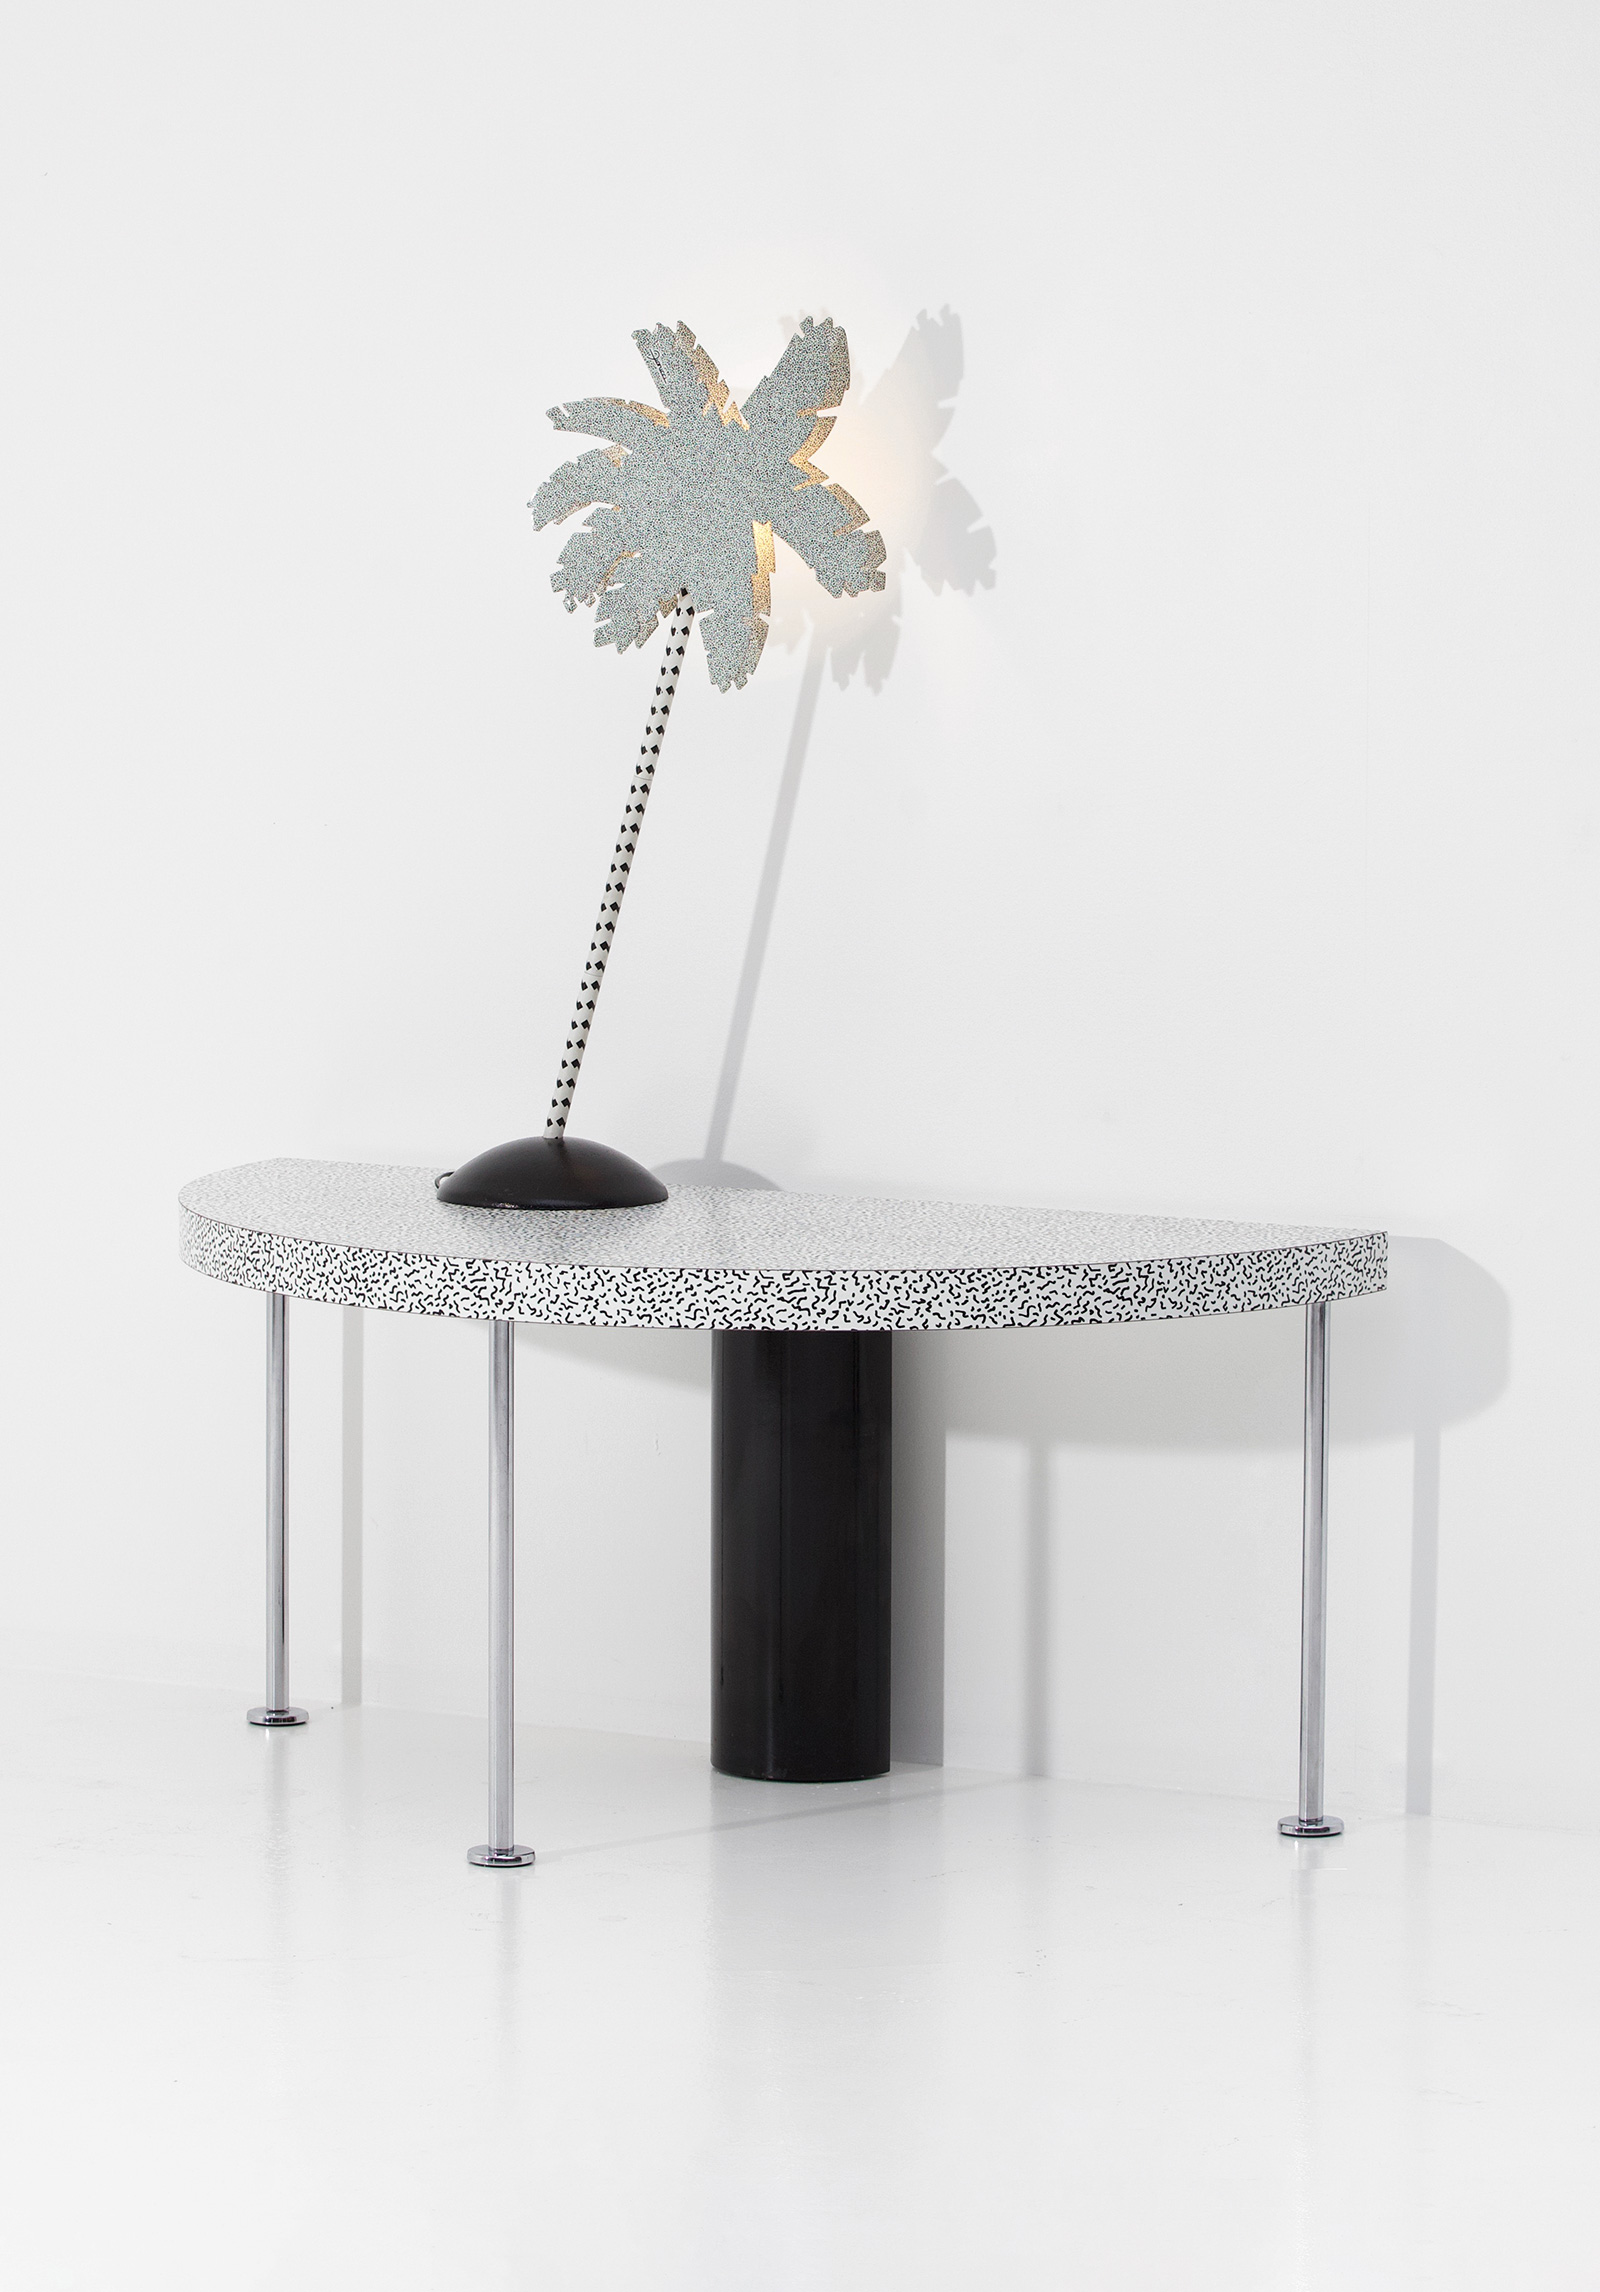 Fiorucci Palm Tree Table Lampimage 1